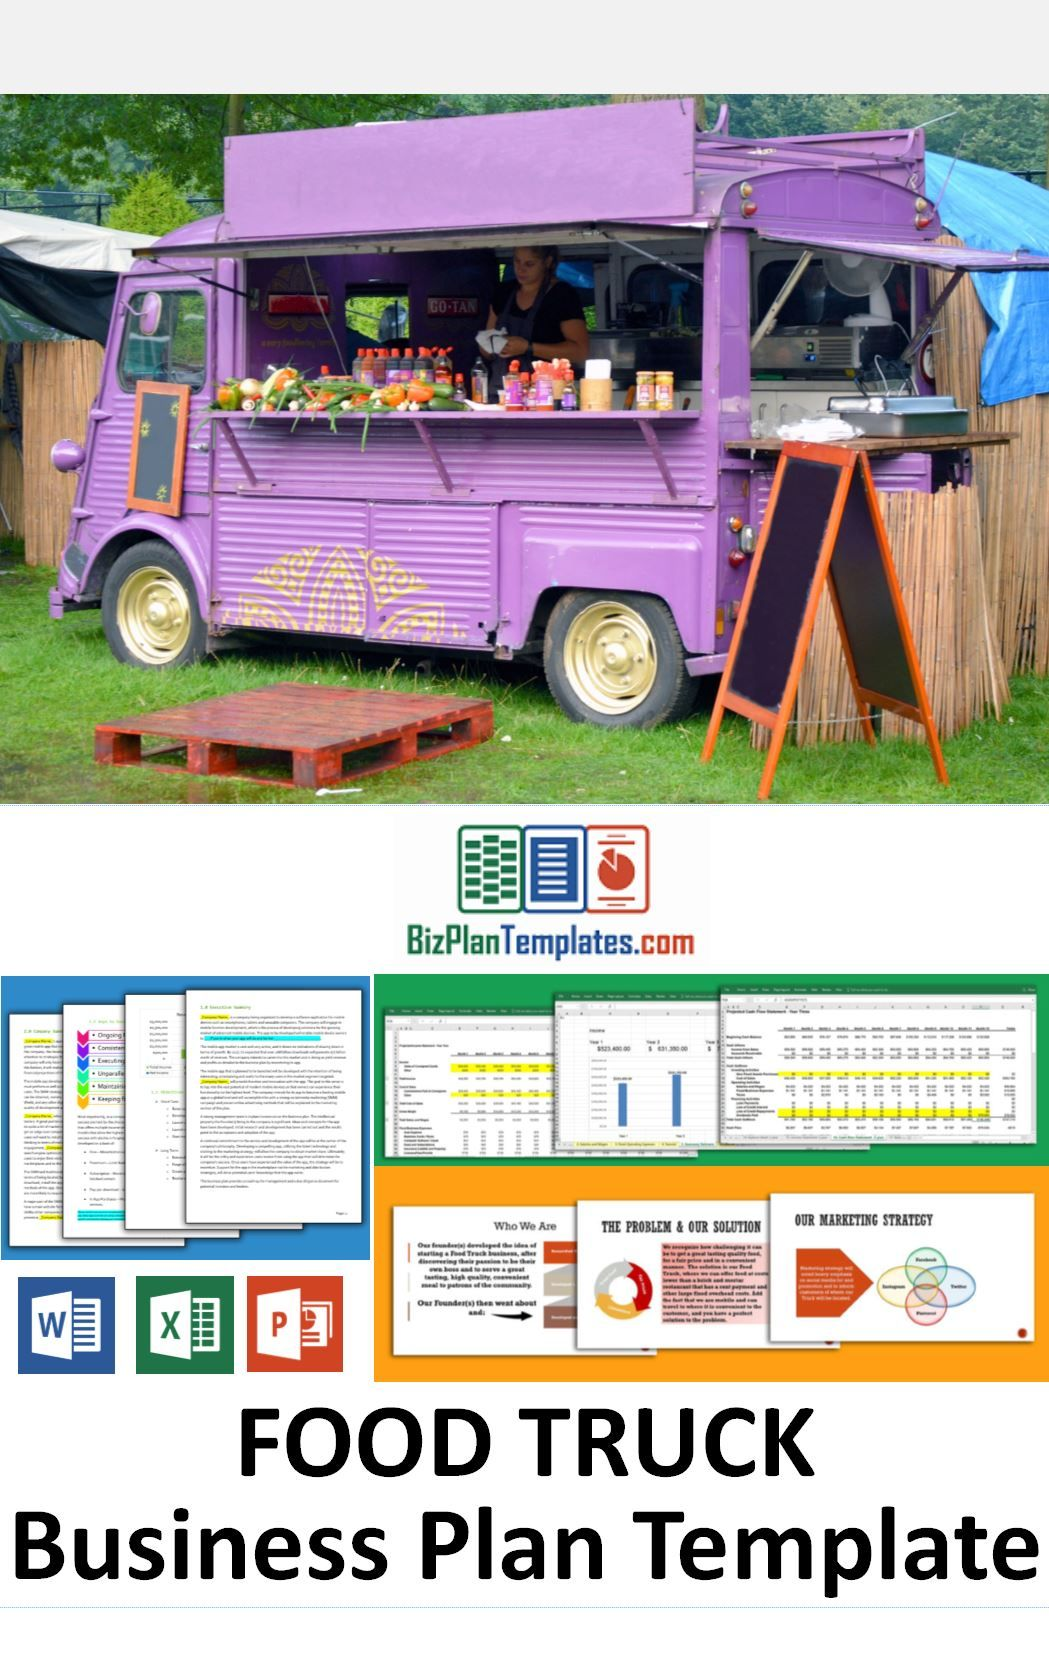 Food truck business plan template sample with financial projections food truck business plan template sample with financial projections wajeb Image collections